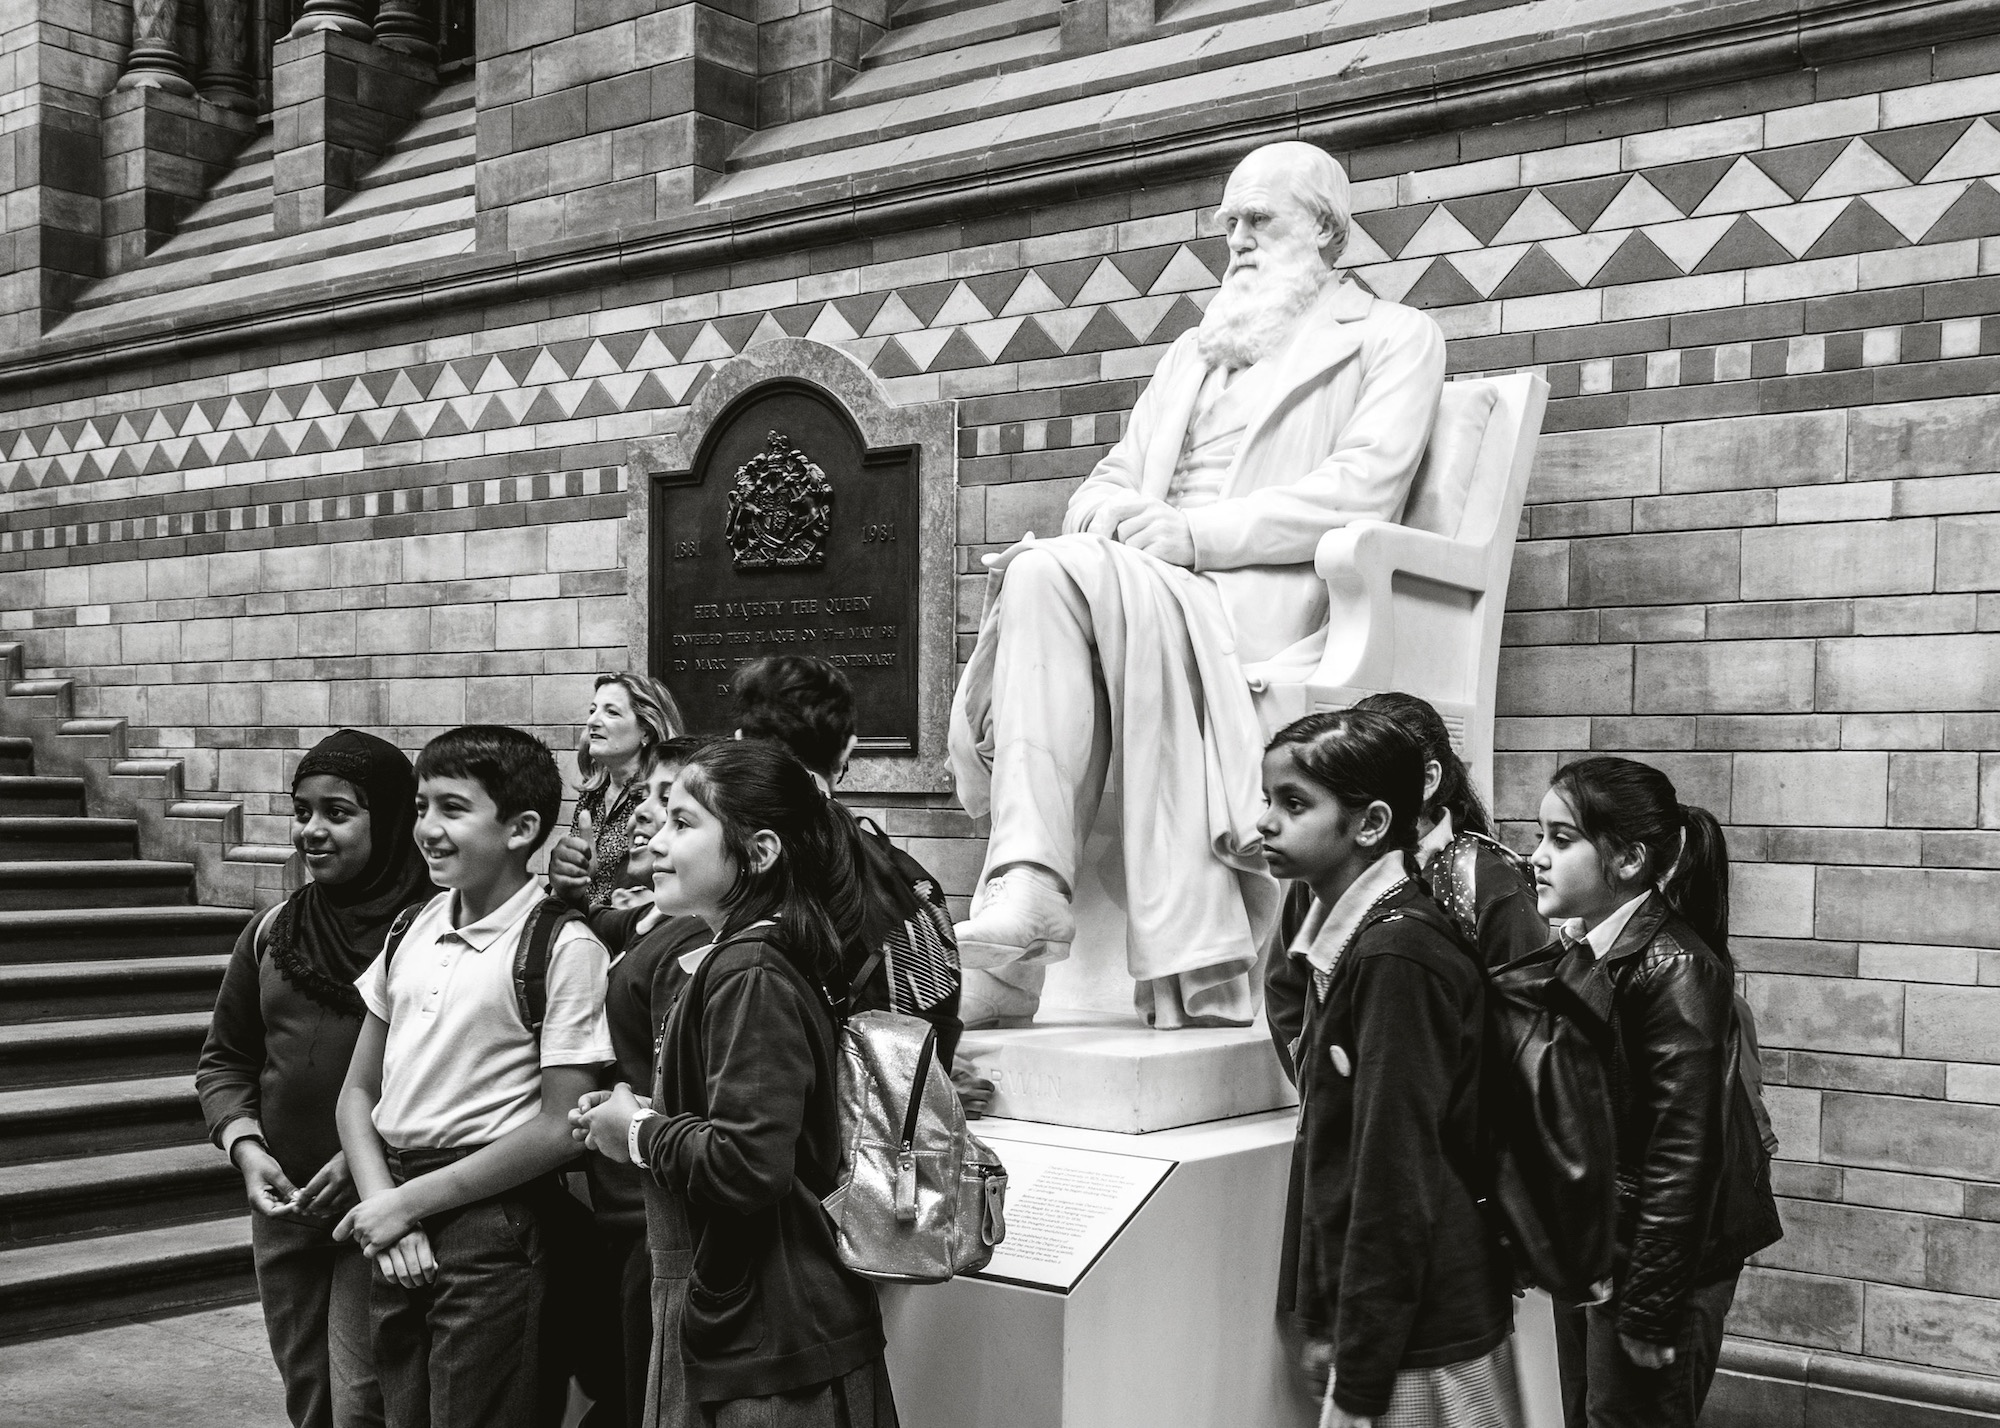 KD6X1J Schoolchildren on a school trip, posing for a photograph in front of the Charles Darwin statue, at the Natural History Museum, London, England, UK.